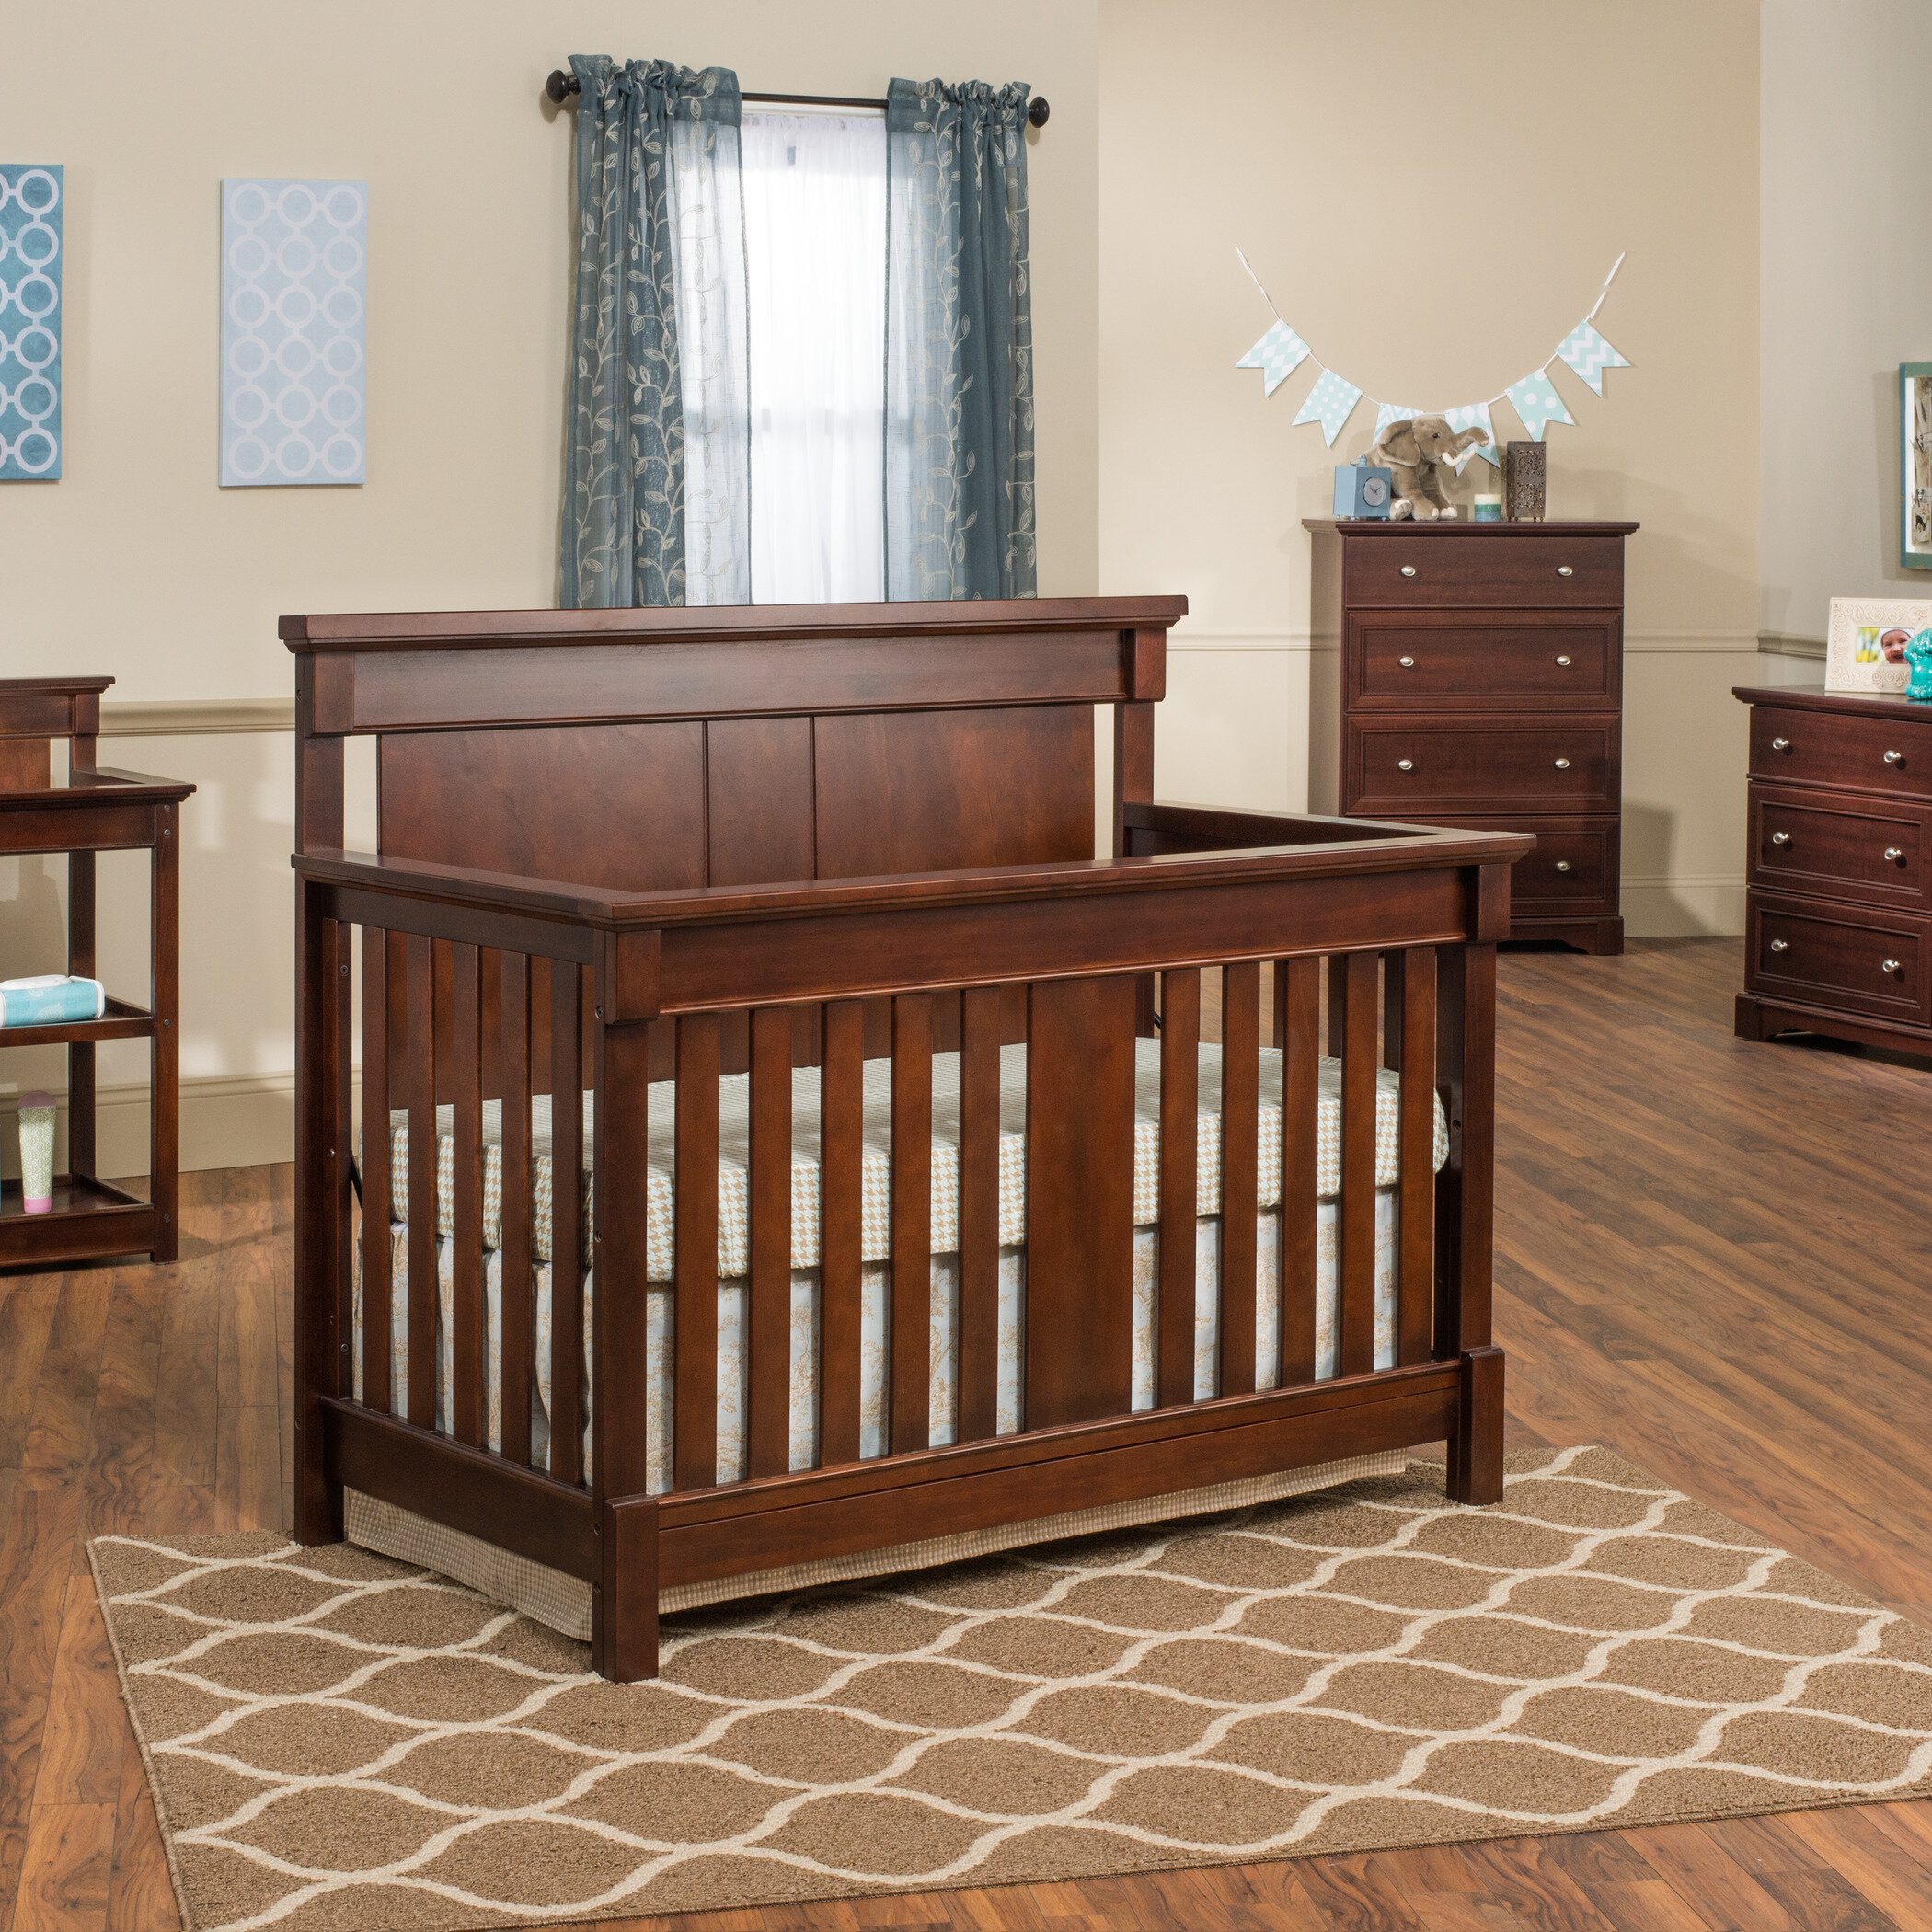 bed baby turns bassett addison into pdx convertible in kids wayfair crib